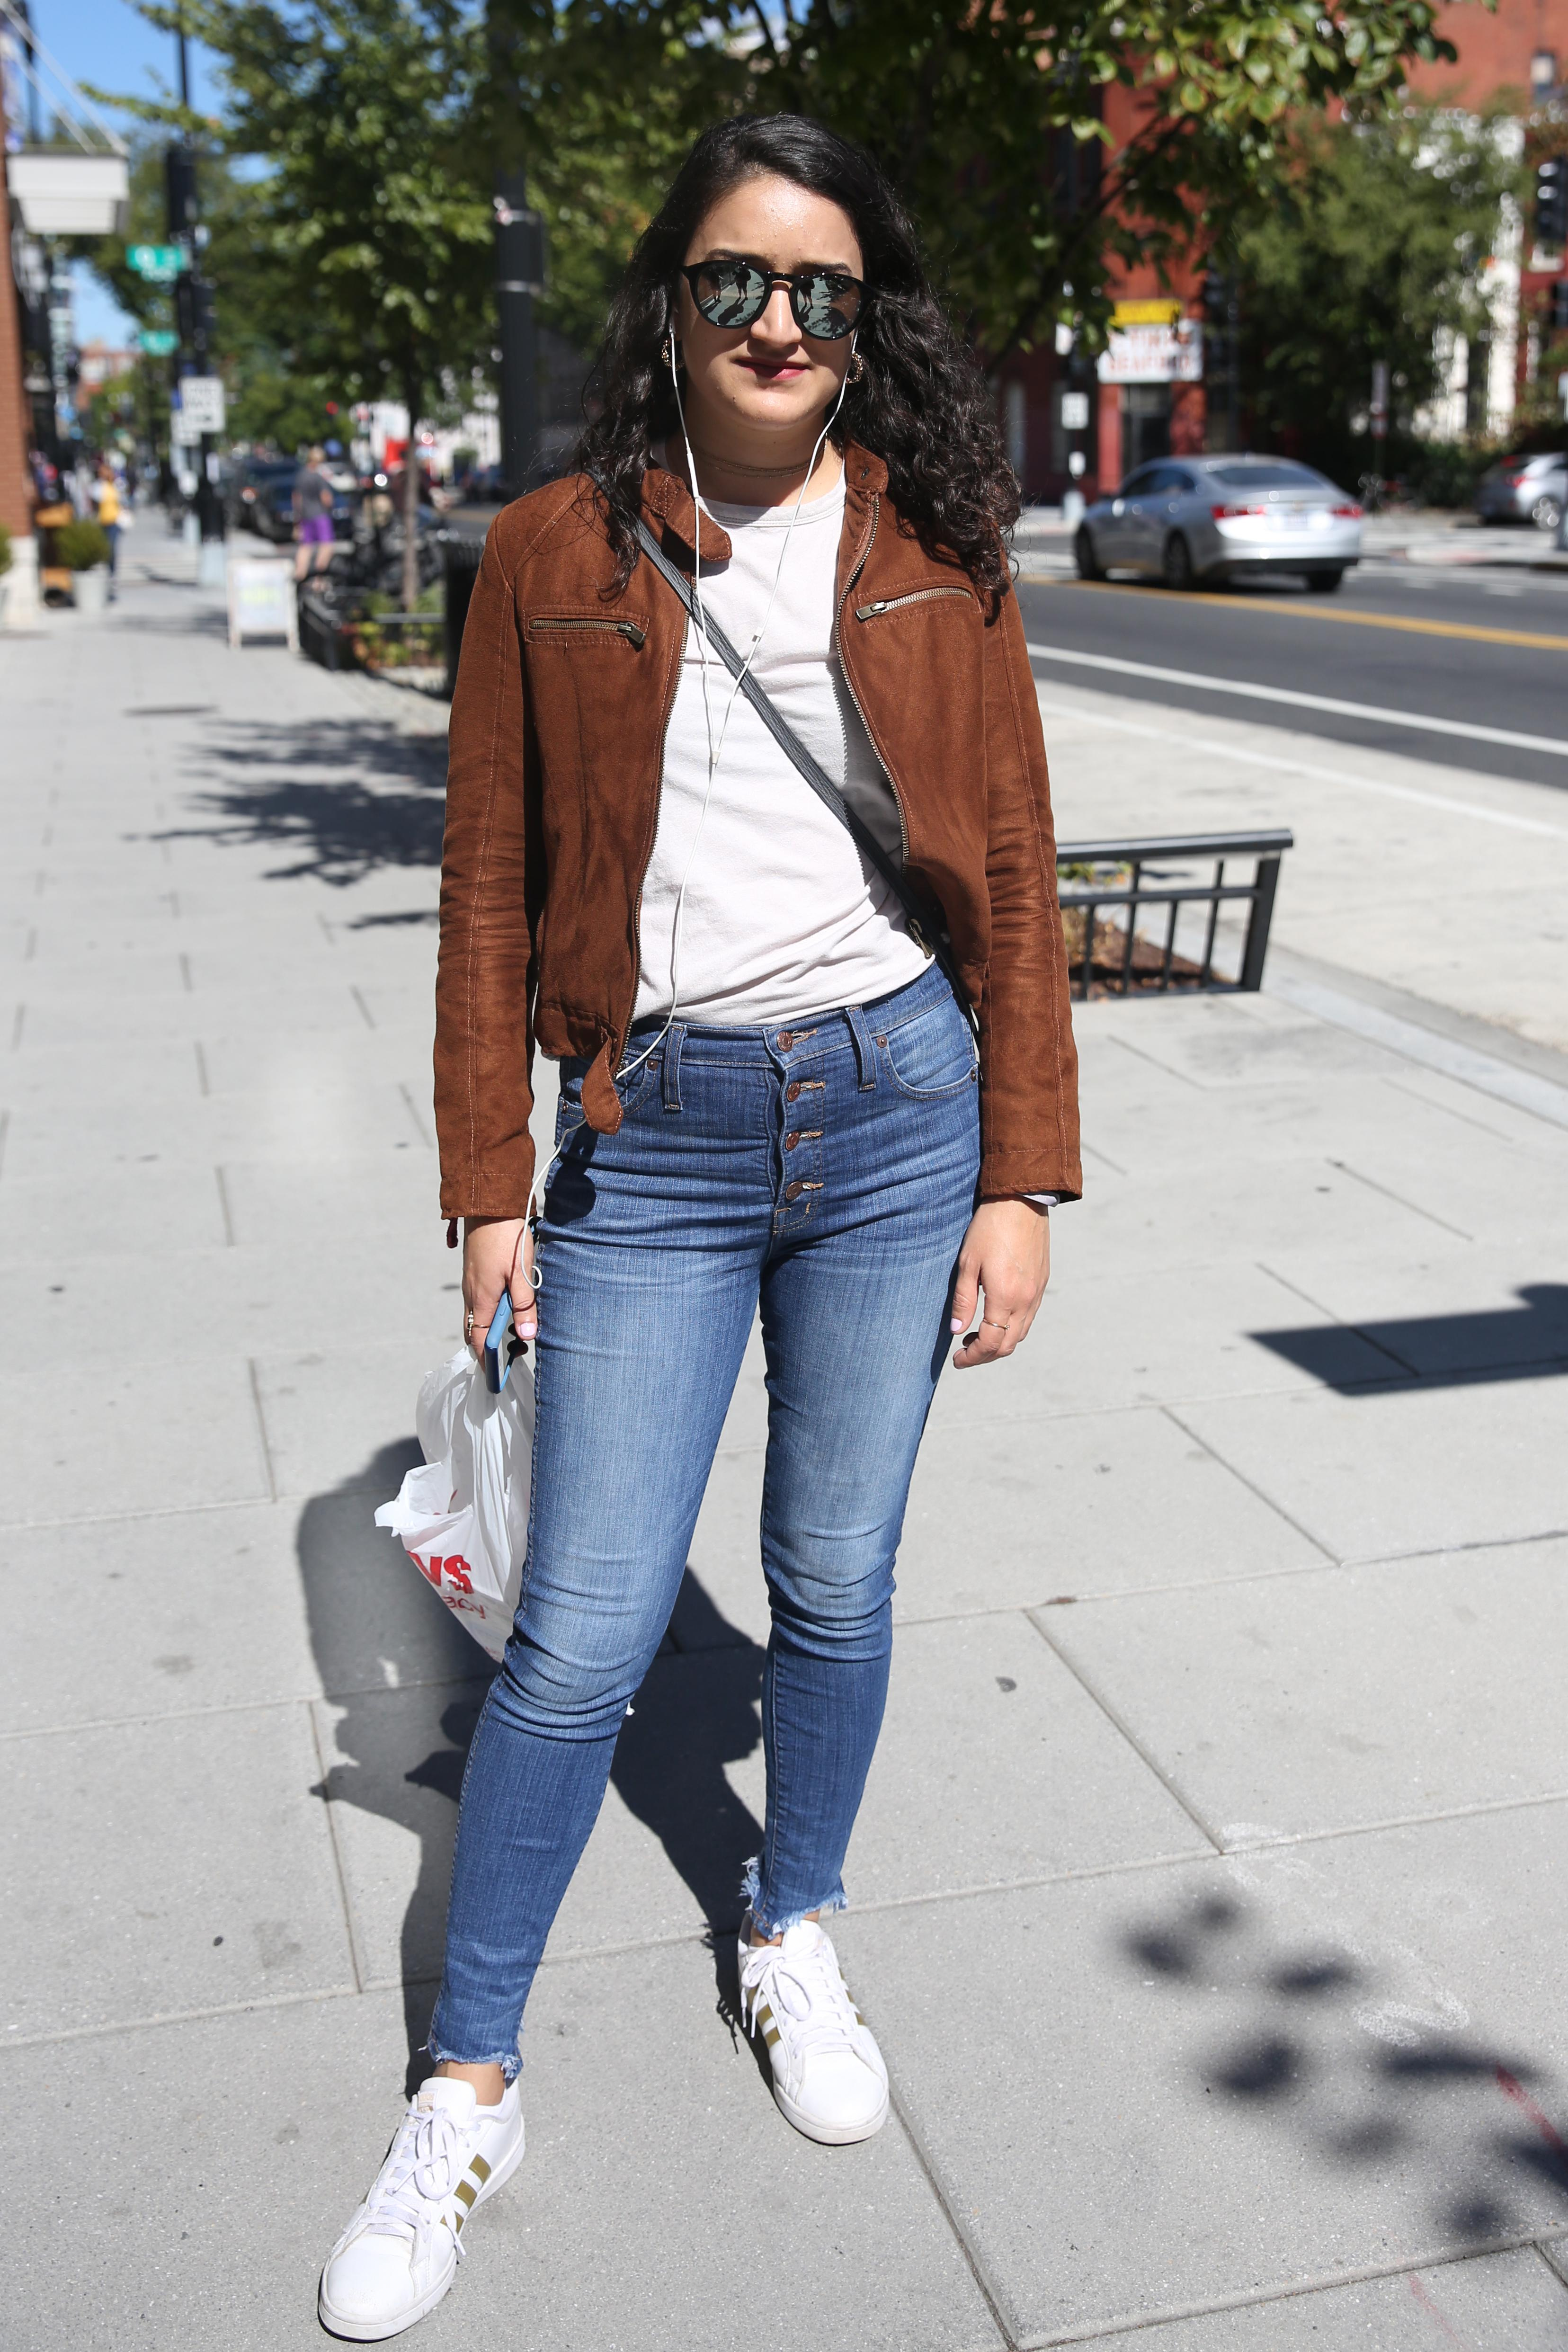 Lori Ismail's high-waisted jeans and brown moto jacket are a modern take on the 70s. The dainty accessories pull the whole look together. (Amanda Andrade-Rhoades/DC Refined)